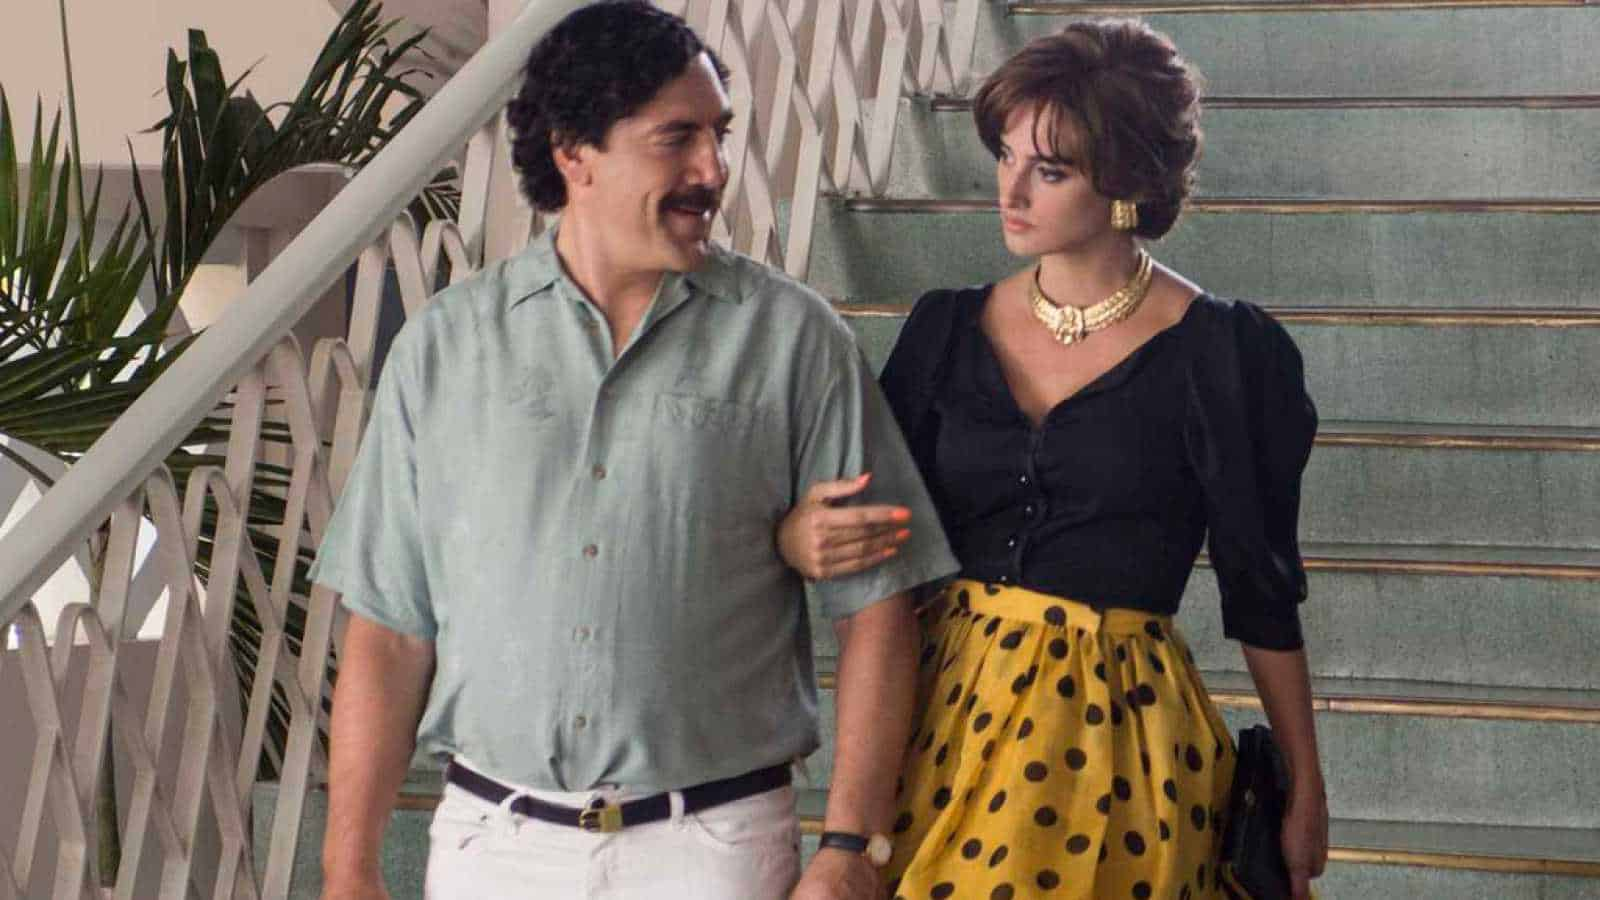 Loving Pablo Escobar film review